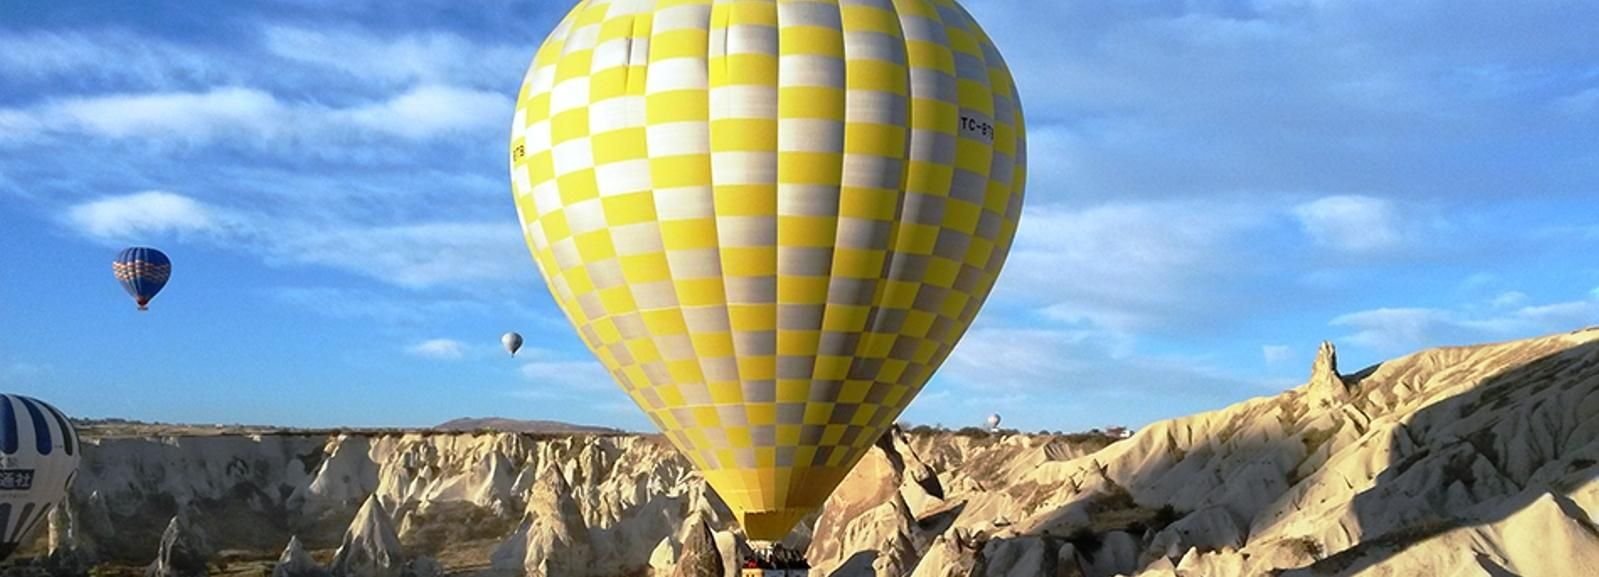 From Istanbul: 4-Day Small Group Istanbul & Cappadocia Tour